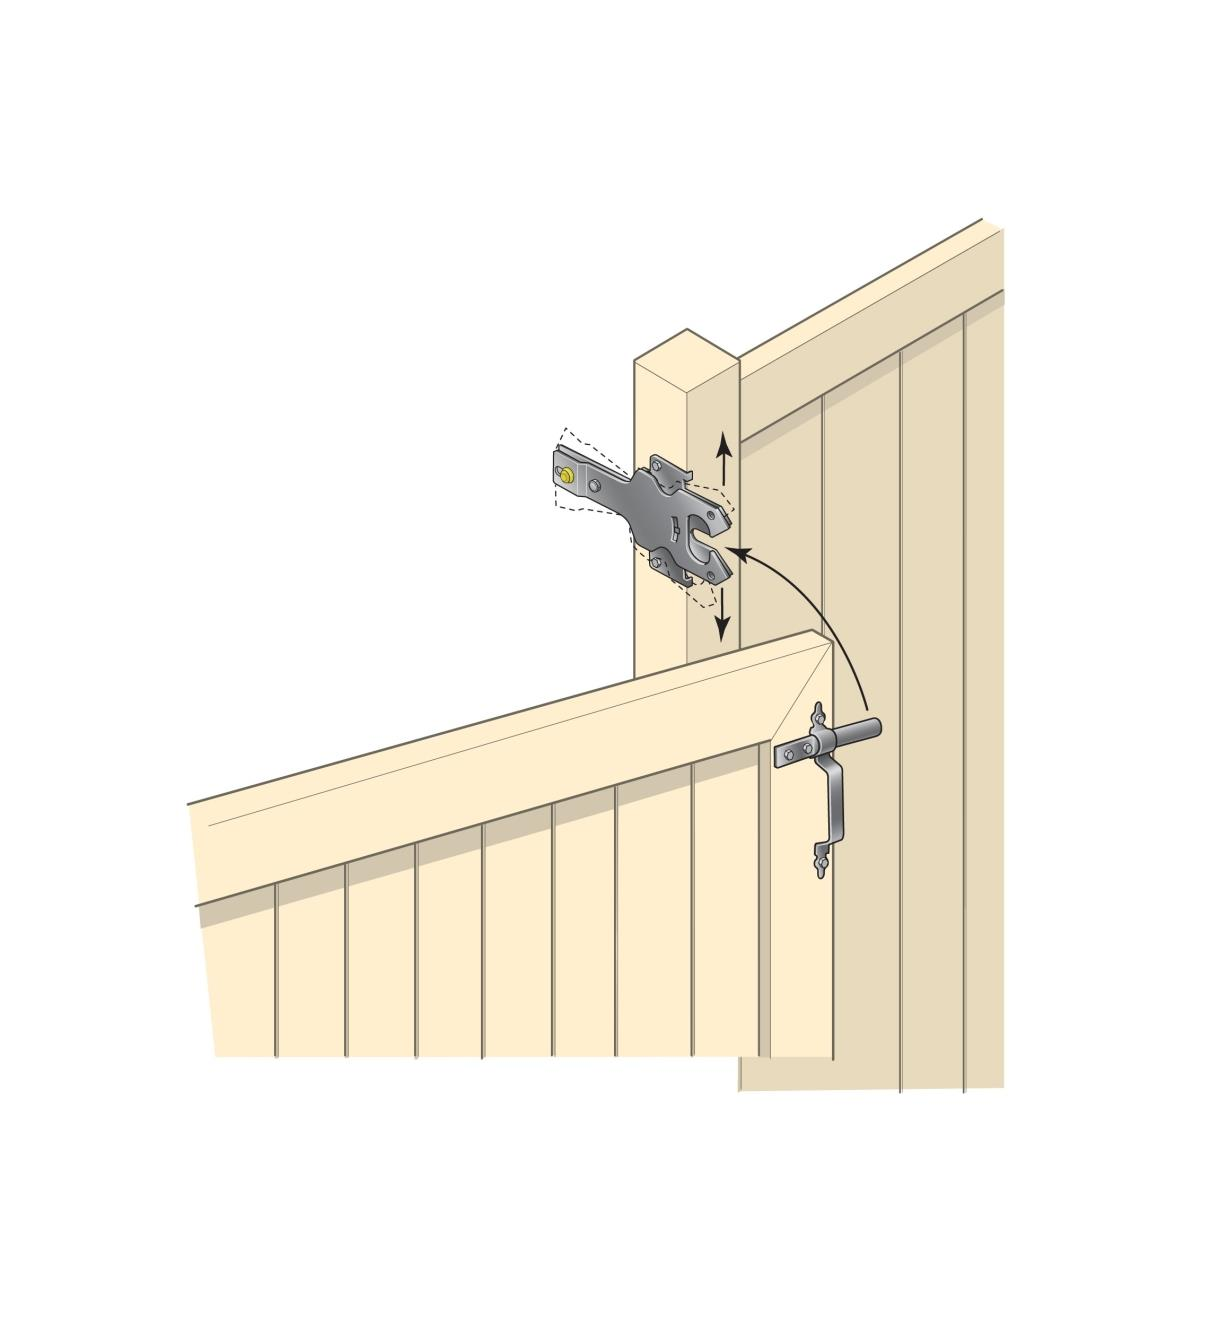 Illustration of Gate Hardware Set installed on a gate